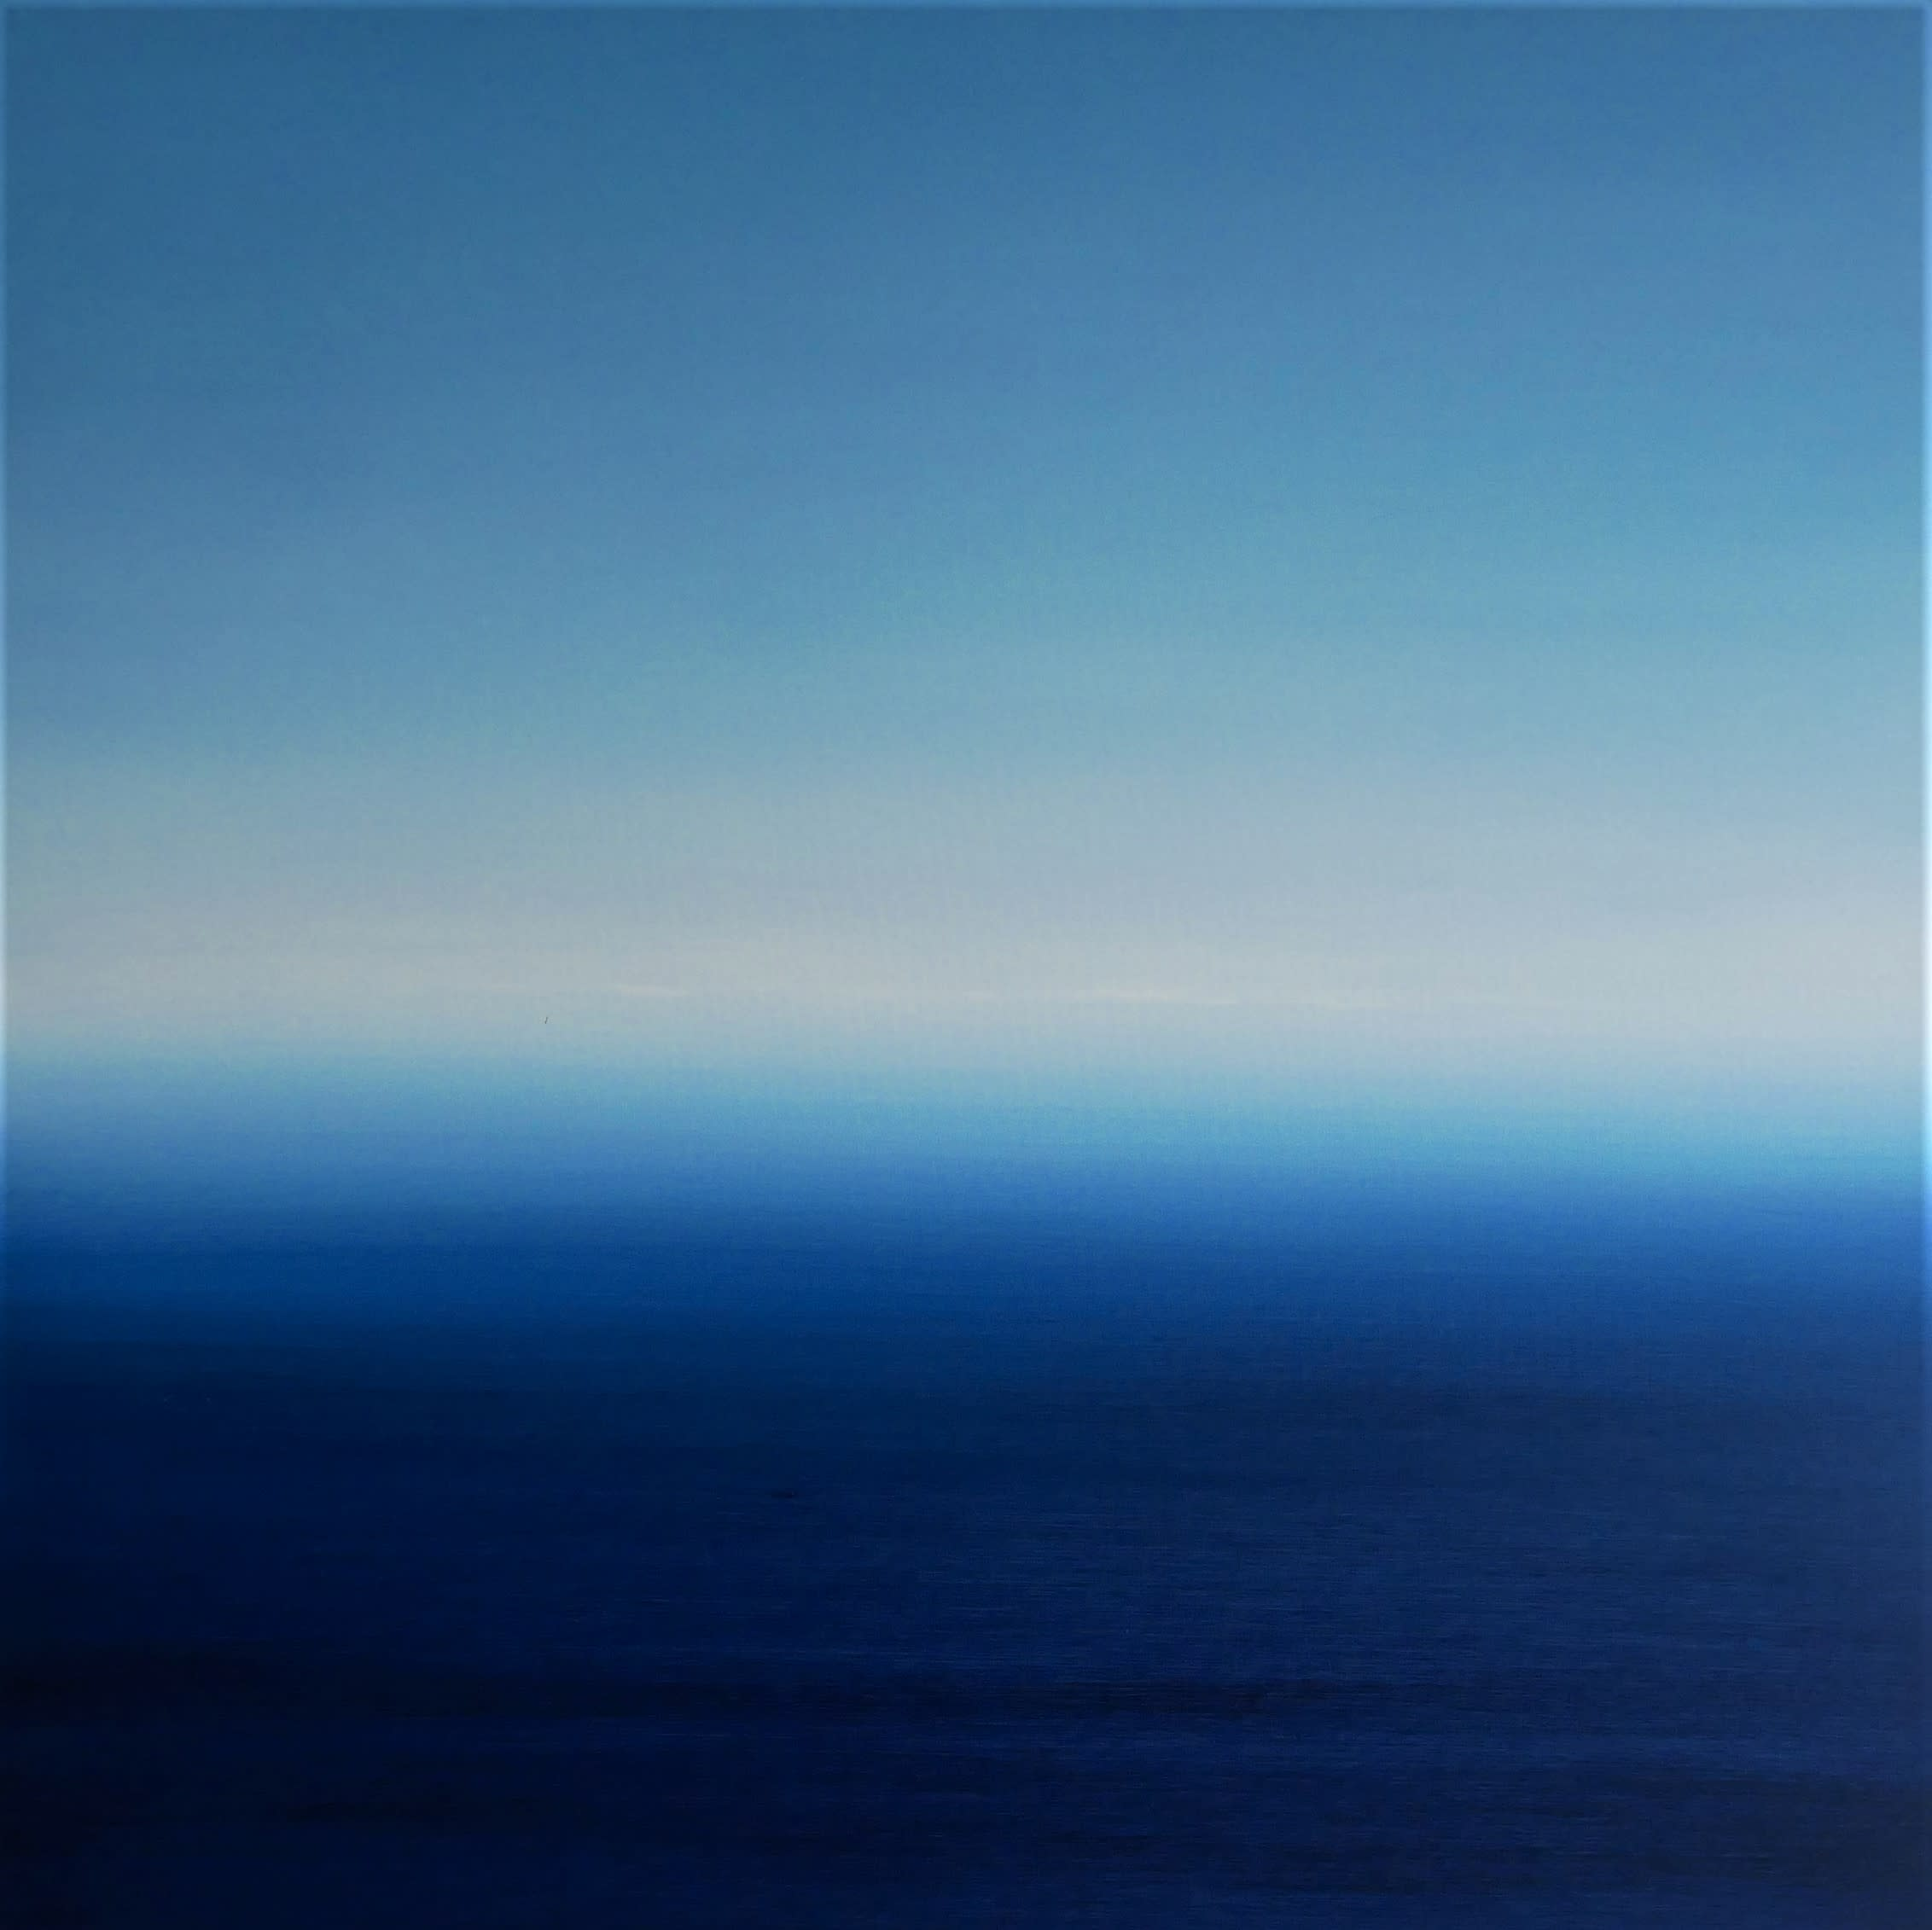 "<span class=""link fancybox-details-link""><a href=""/artists/78-martyn-perryman/works/7323-martyn-perryman-eternal-ocean-2020/"">View Detail Page</a></span><div class=""artist""><strong>Martyn Perryman</strong></div> <div class=""title""><em>Eternal Ocean</em>, 2020</div> <div class=""medium"">Oil on Canvas</div> <div class=""dimensions"">h. 80 cm x w. 80 cm</div><div class=""copyright_line"">Own Art: £99 x 10 months, 0% APR</div>"